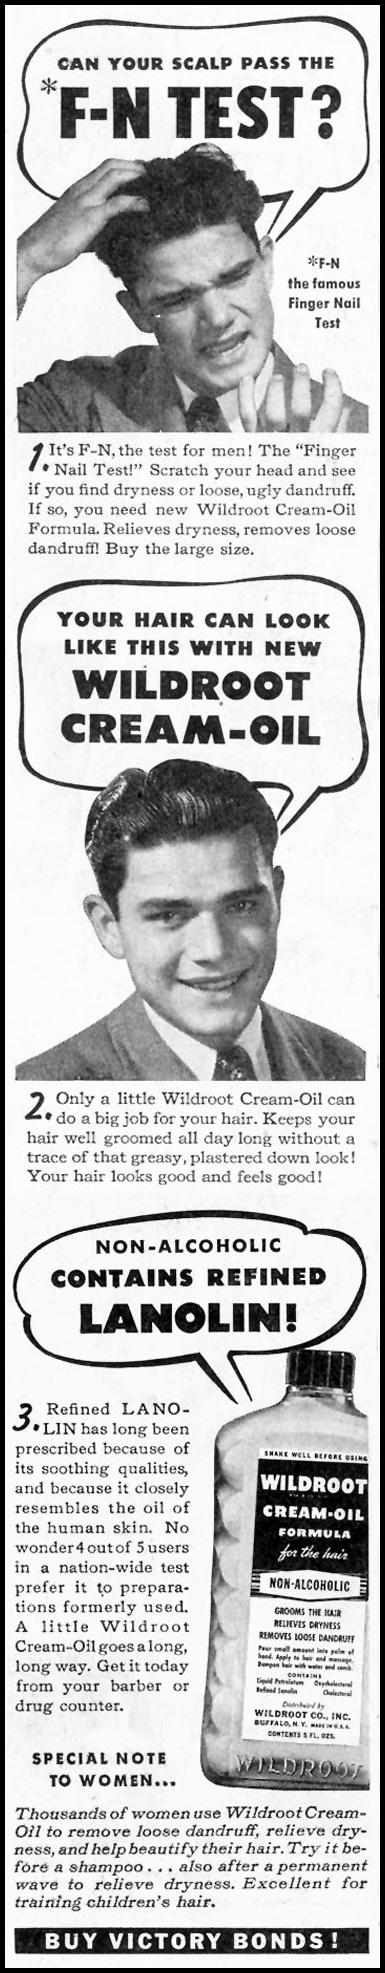 WILDROOT CREAM-OIL SATURDAY EVENING POST 10/06/1945 p. 44